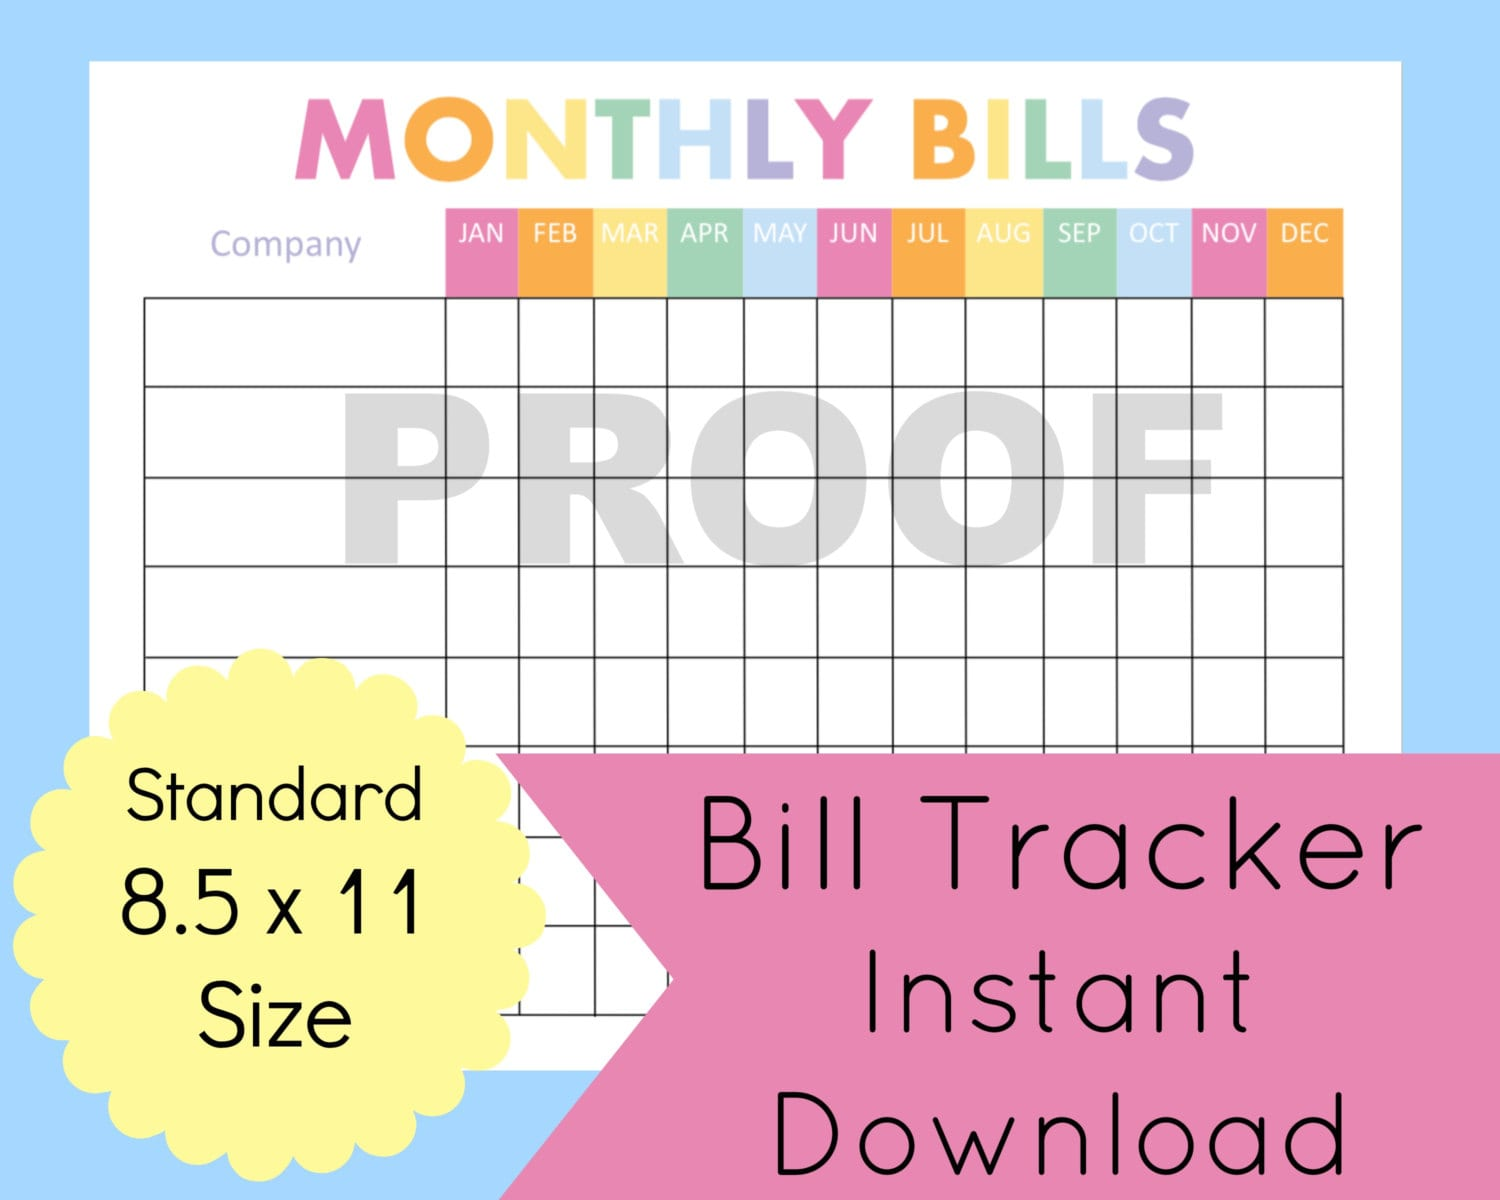 Free Printable Budget Planner Monthly Budget Planner Template Budget Planner Template Monthly Financial Planning Worksheet Printable Budget Planner Budget Planner Dave Ramsey Excel Financial Planning Monthly Worksheet